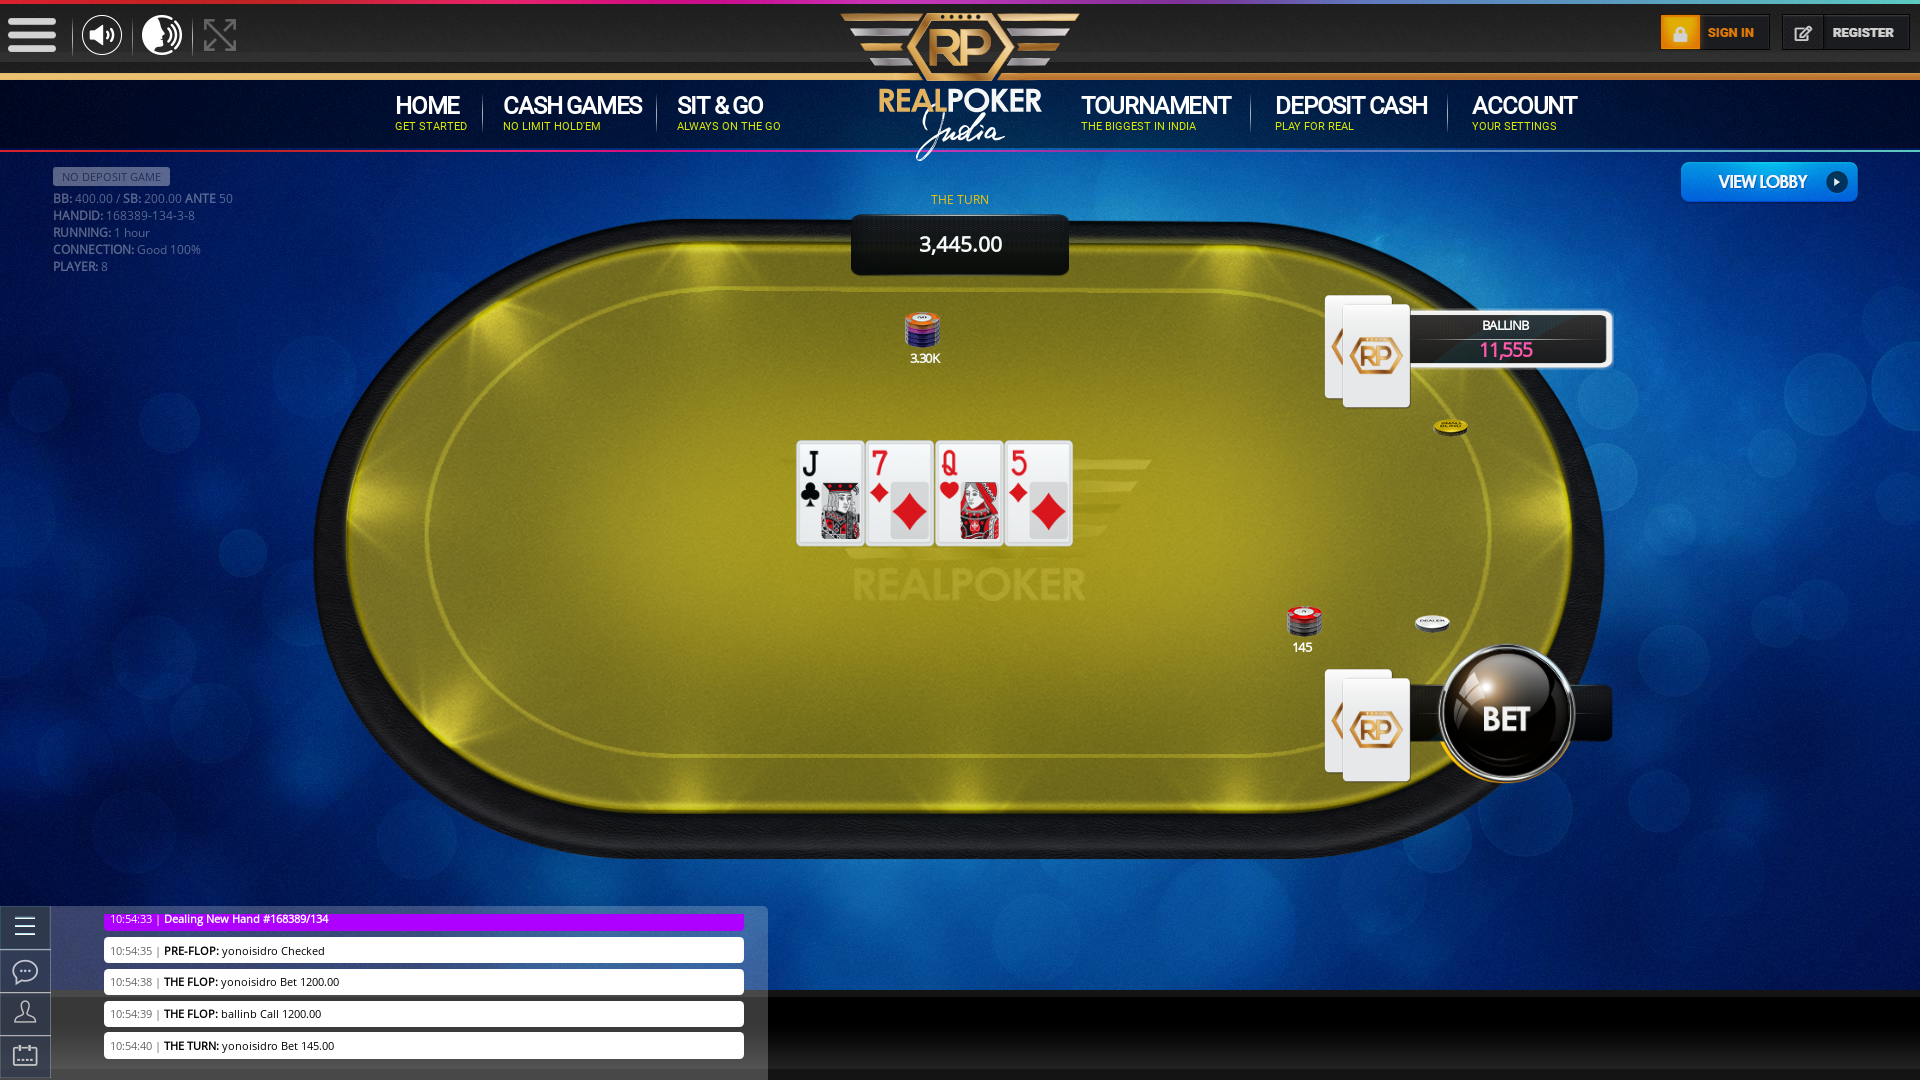 Indian 10 player poker in the 61st minute